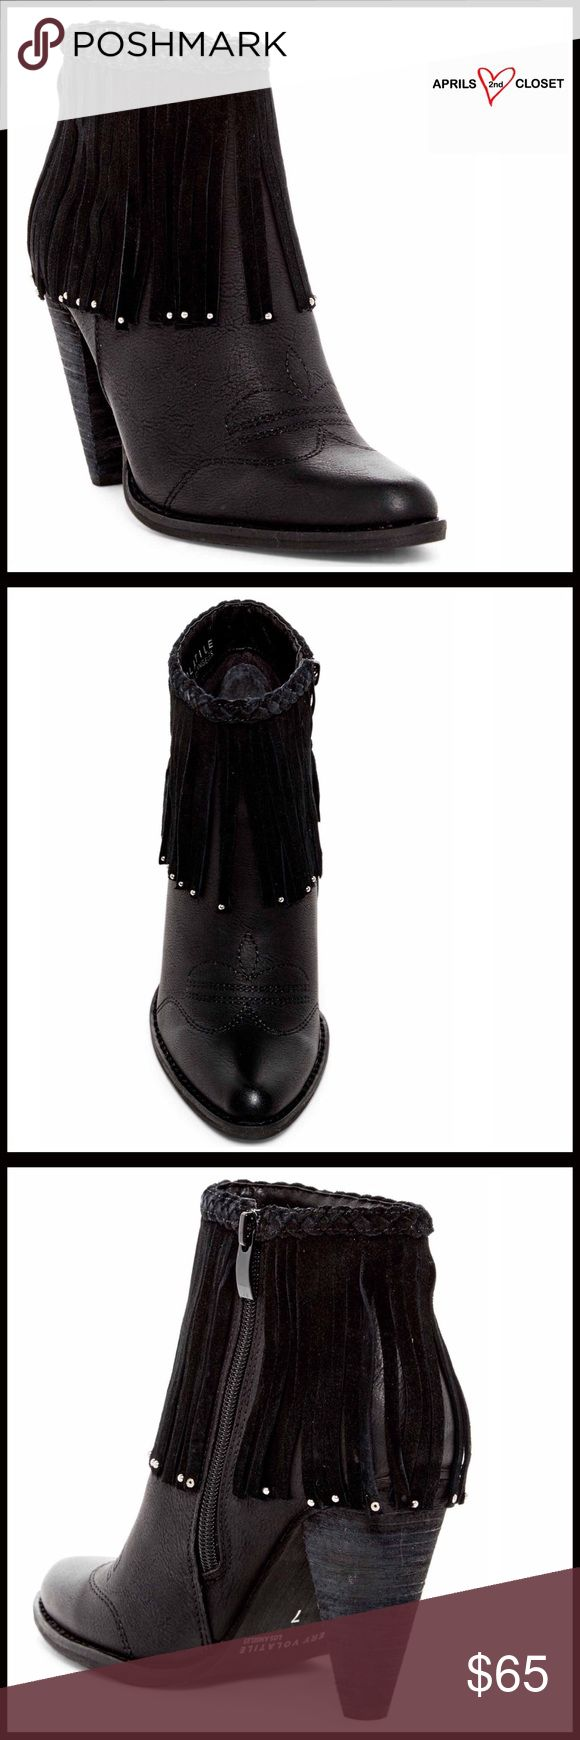 """FRINGE BOOTS Ankle Booties 💟NEW WITH TAGS💟 RETAIL PRICE: $85 FRINGE BOOTS Ankle Booties   * Almond toe  * Side zip closure  * Vegan faux leather construction  * Braided trim w/cascading fringe & toptitched detail   * Approx 4"""" high heels, 3 5/8"""" shaft & 11.5"""" opening  * True to size   Material: Leather & synthetic upper & textile sole Color: Black ITEM#   🚫No Trades🚫 ✅ Offers Considered*✅ Volatile Shoes Ankle Boots & Booties"""